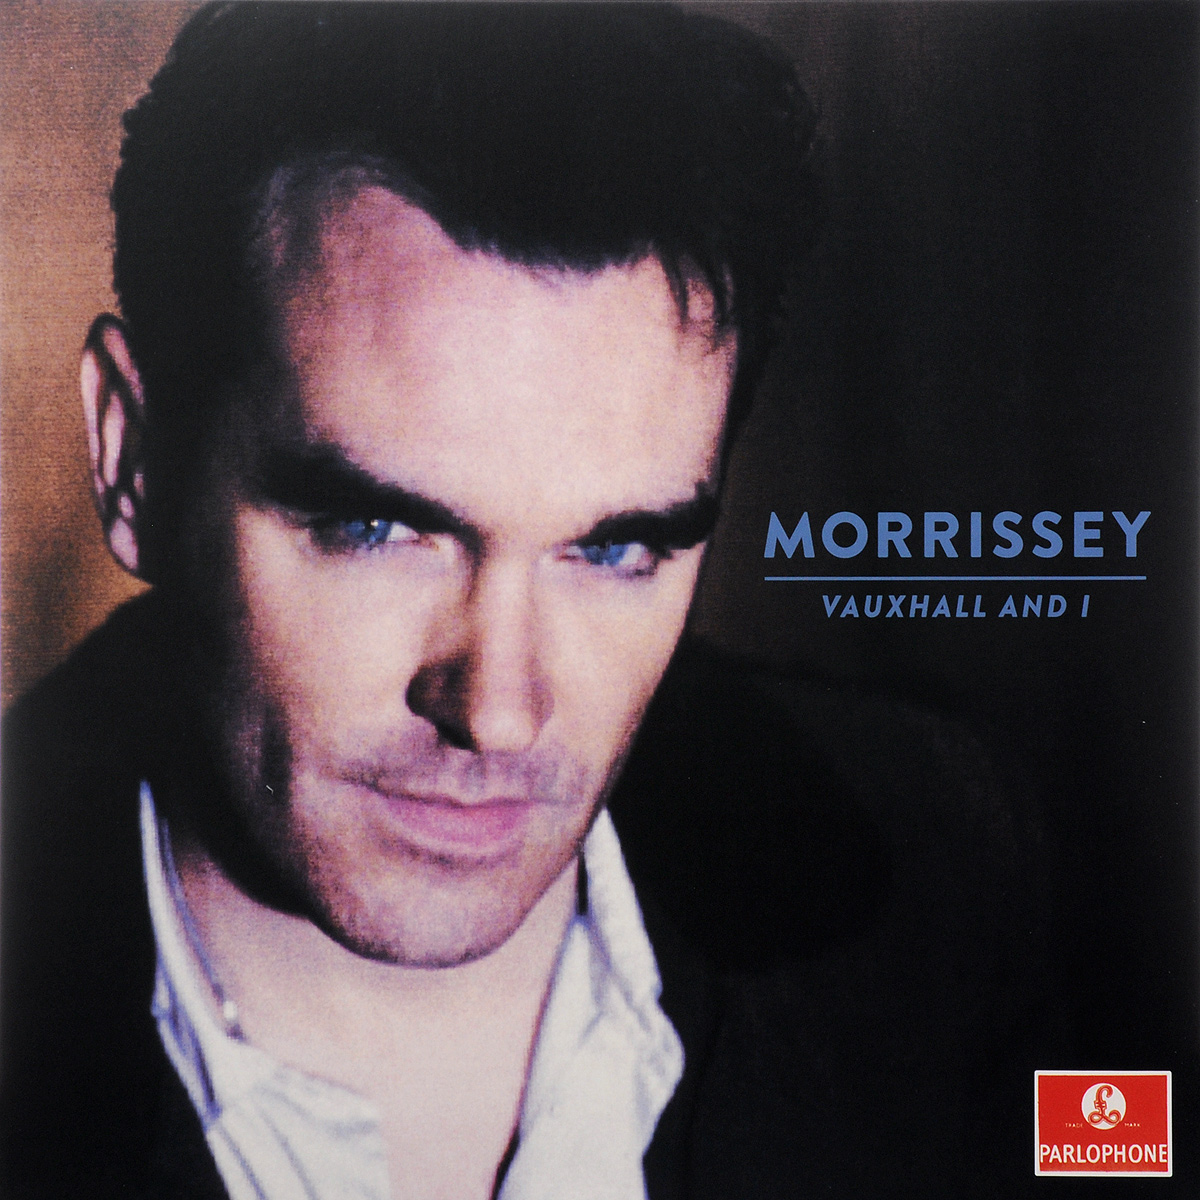 цена на Моррисси Morrissey. Vauxhall And I (LP)